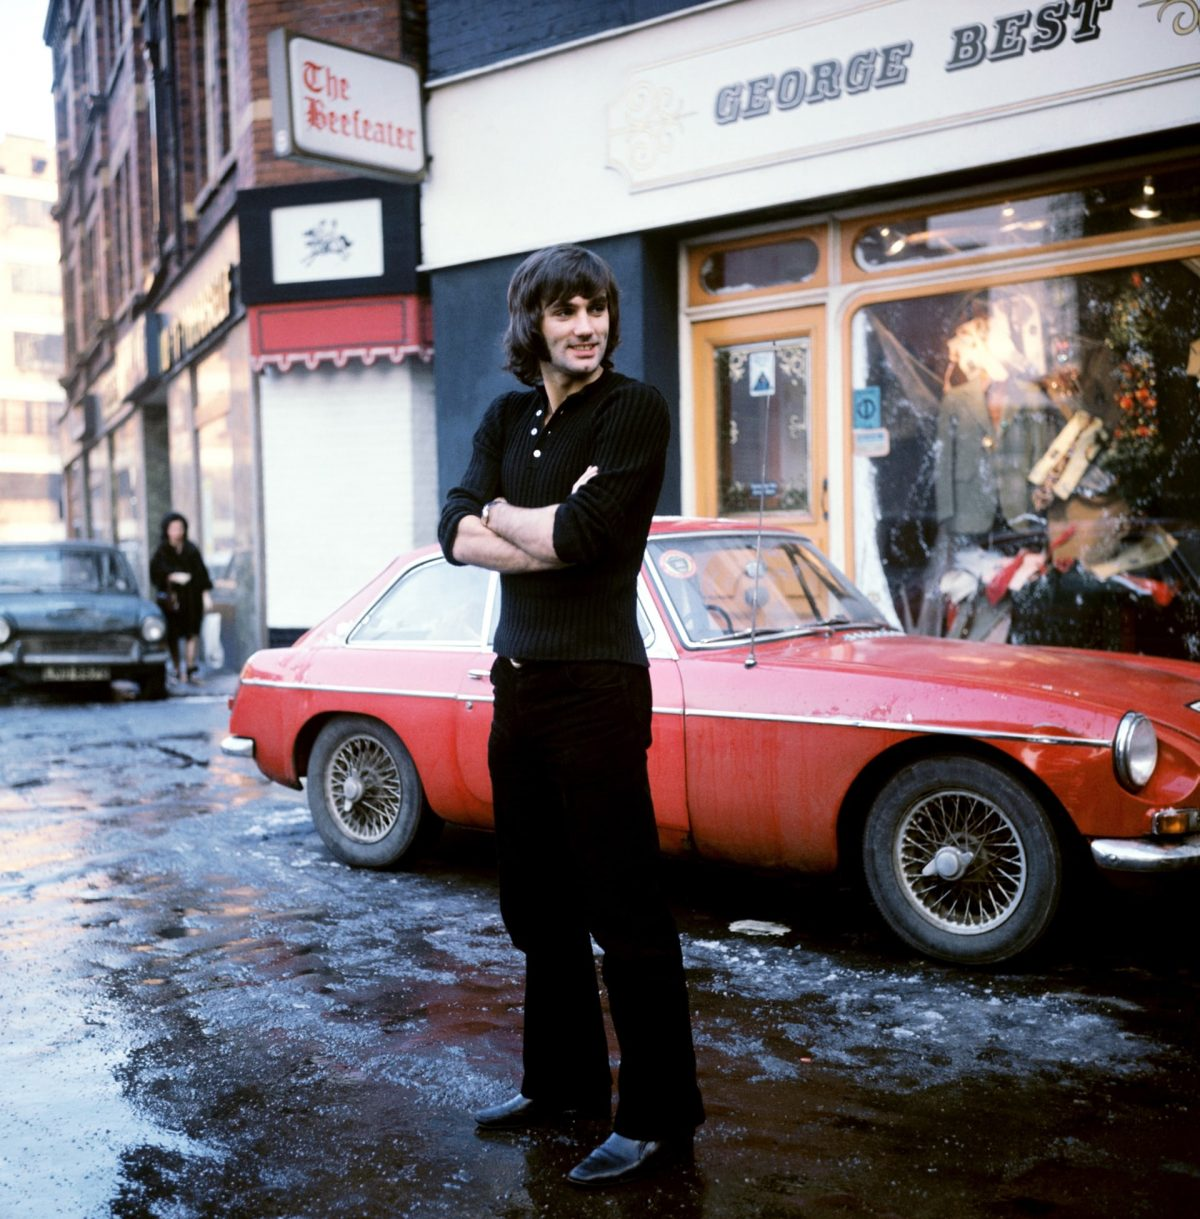 Manchester United and Northern Ireland footballer George Best at his Manchester boutique. Photograph: PA Archive